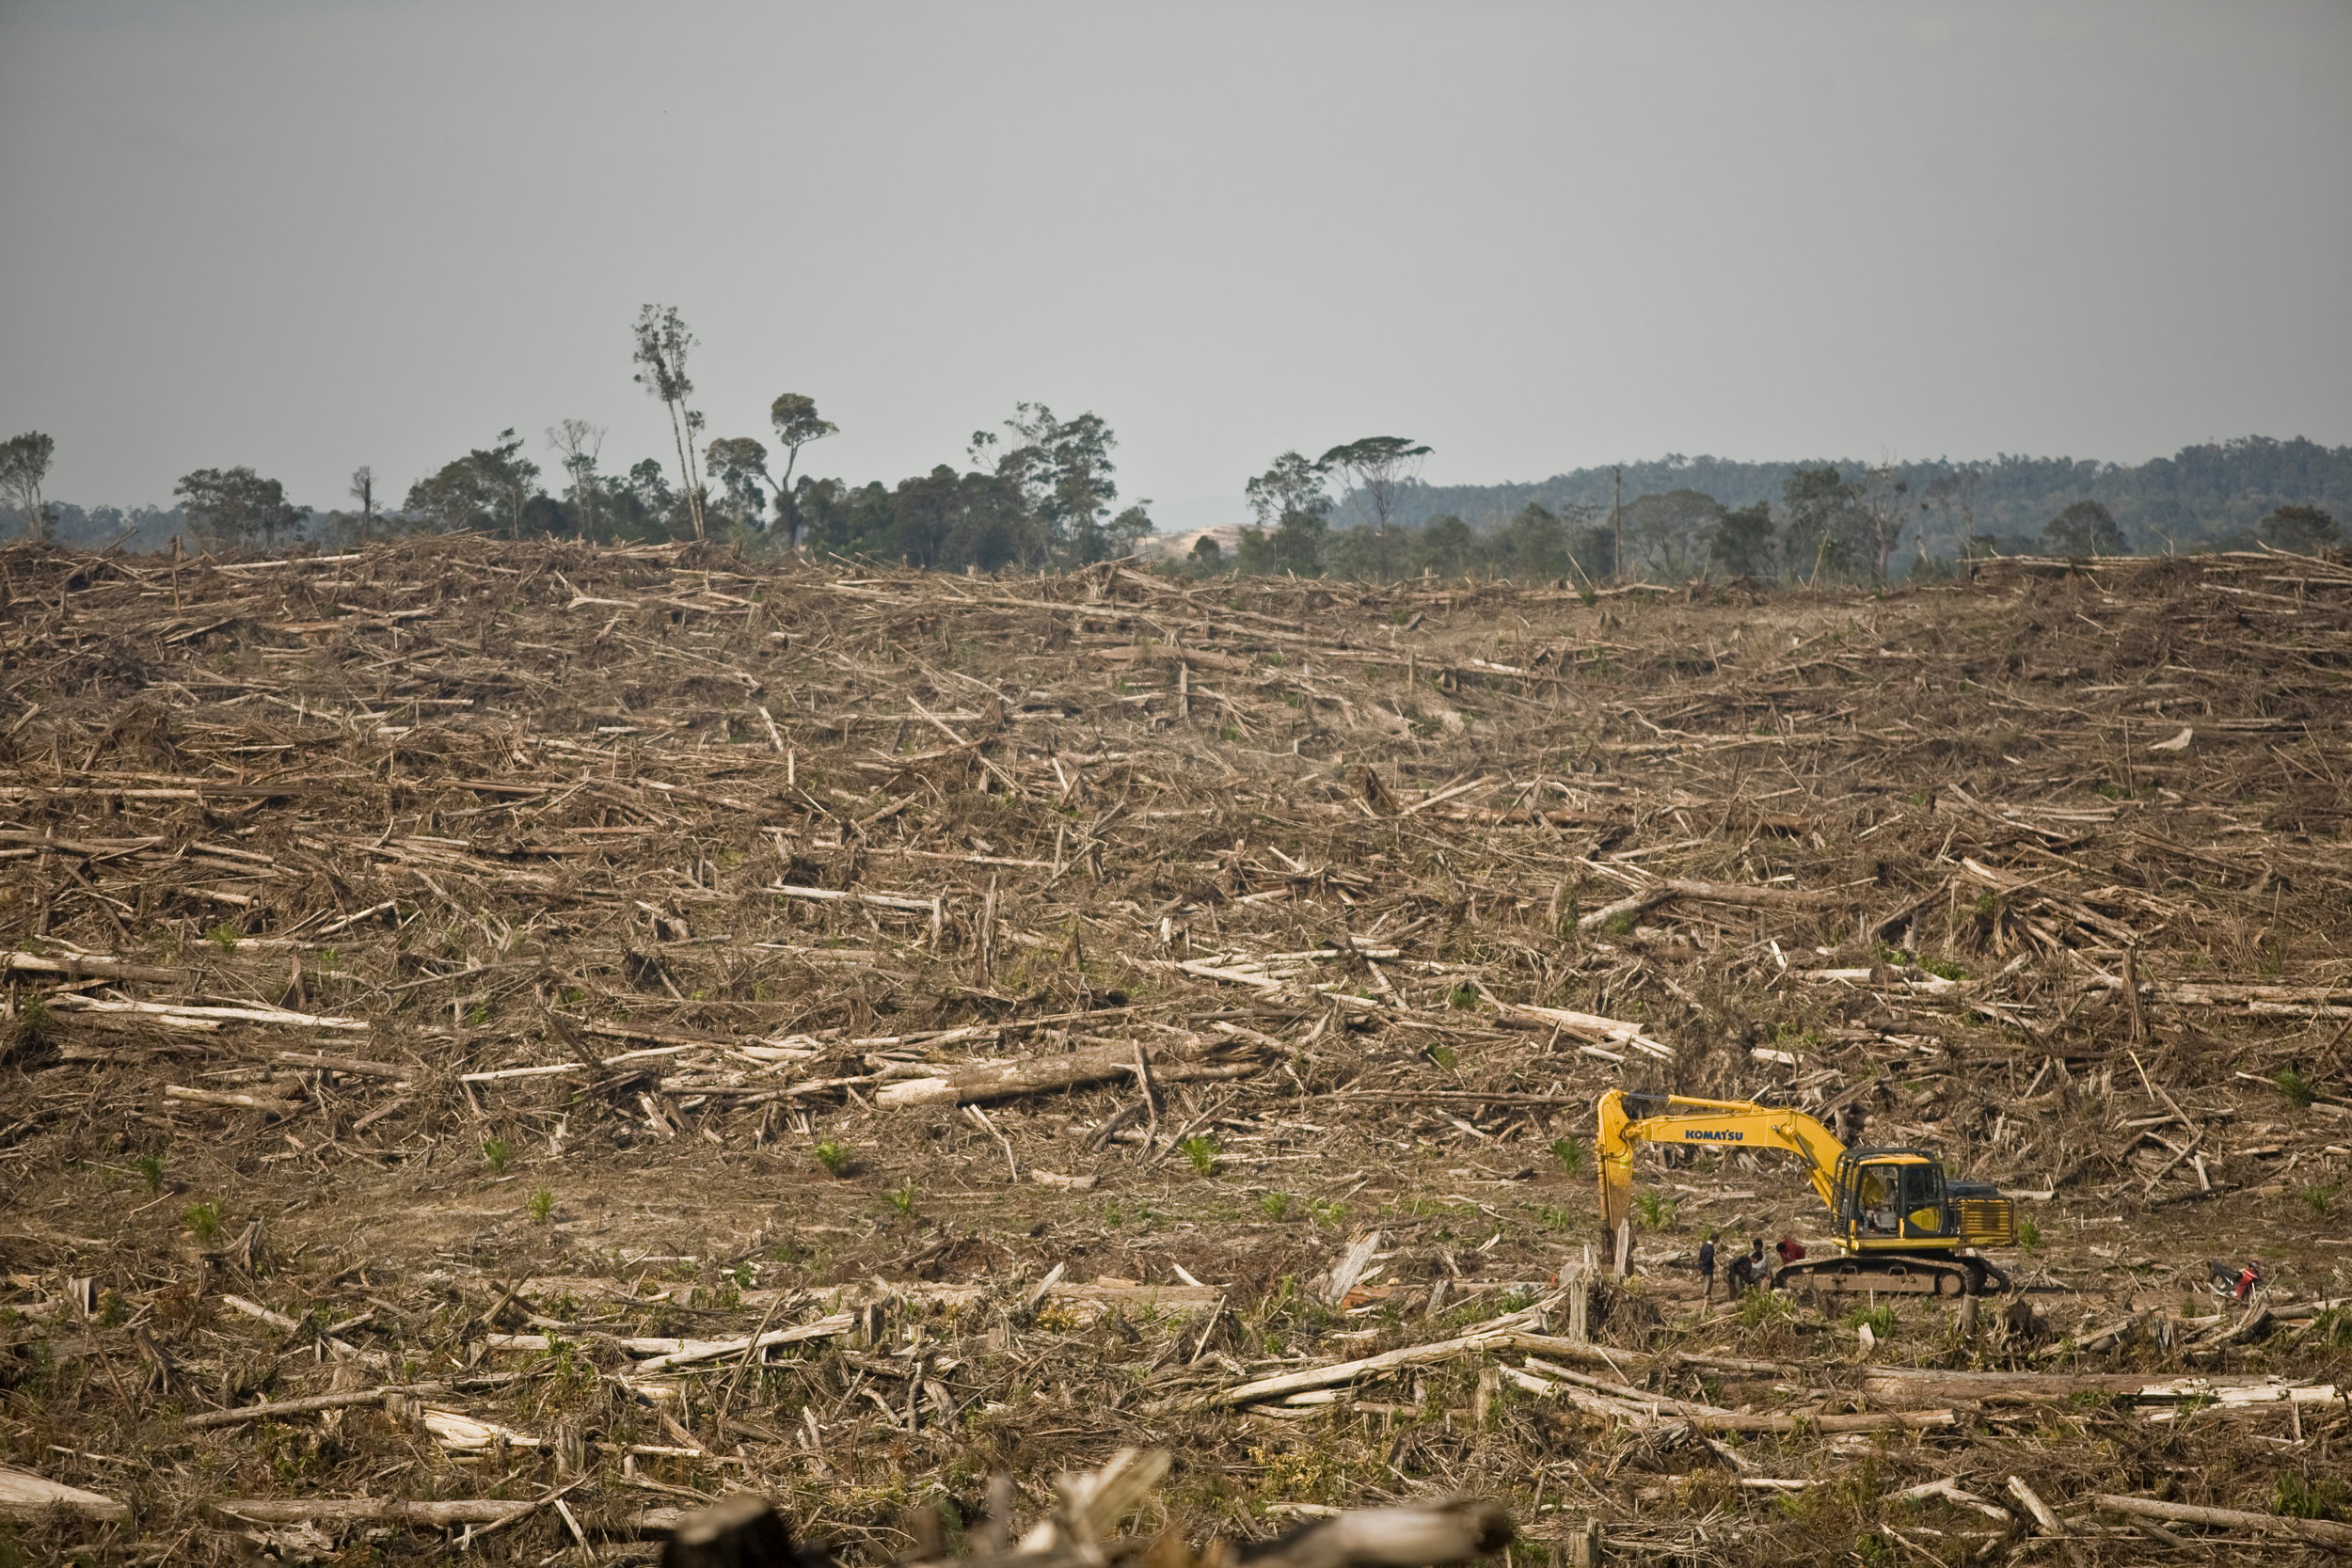 Primary rainforests destroyed for palm oil plantations